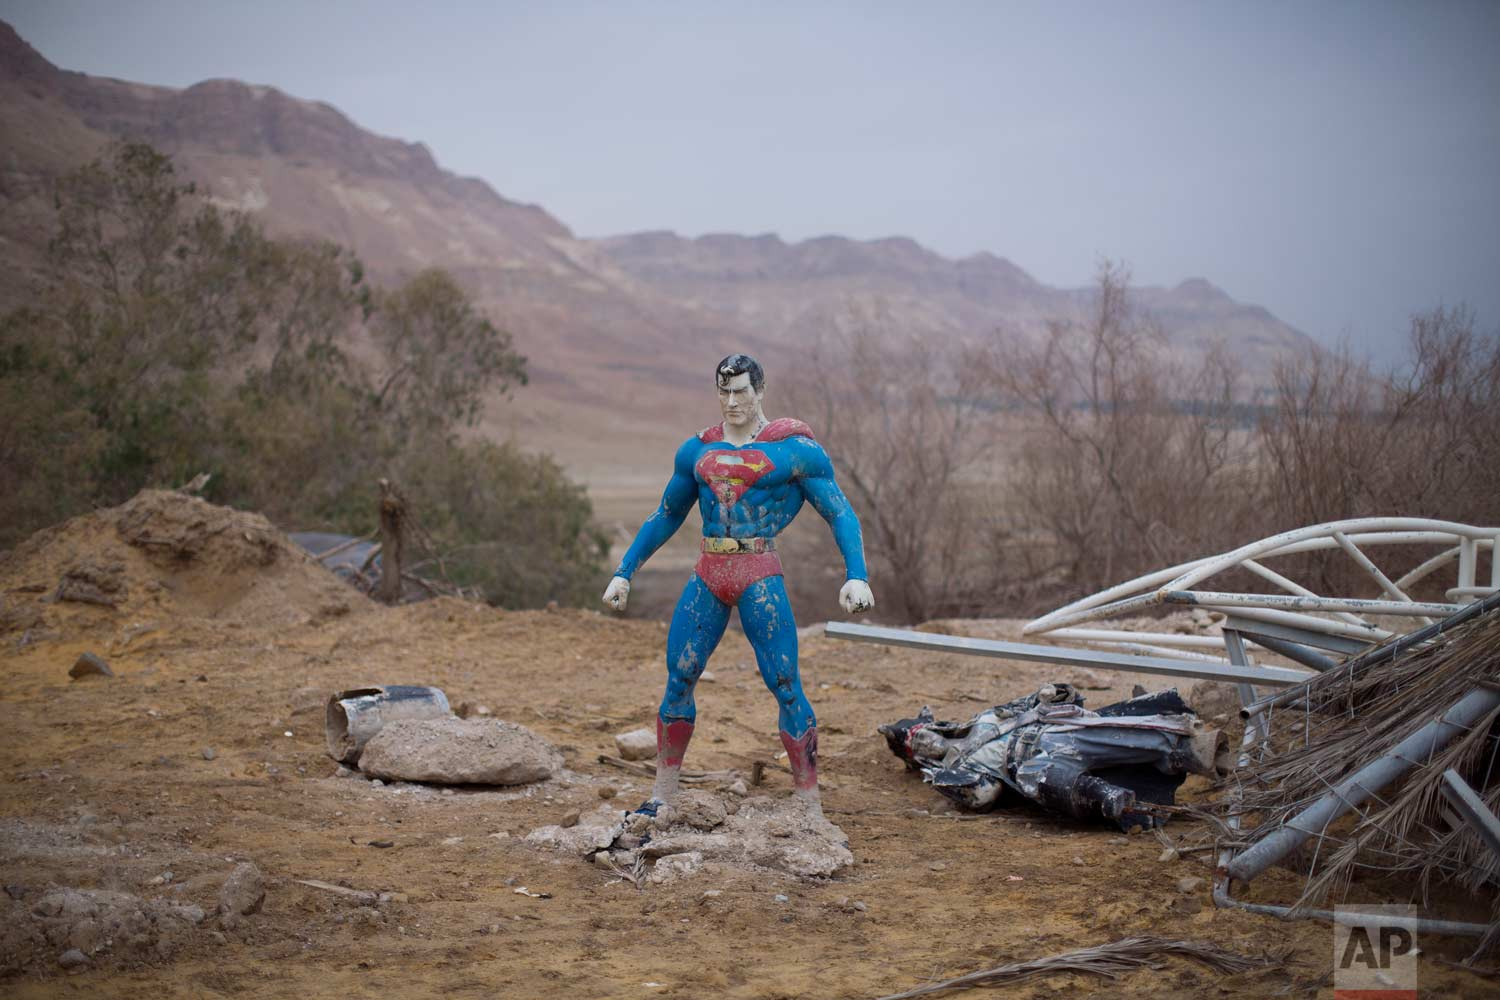 In this Wednesday, Jan. 25, 2017 photo, a superman statue is discarded at the Israeli Dead Sea resort of Ein Gedi. (AP Photo/Oded Balilty)